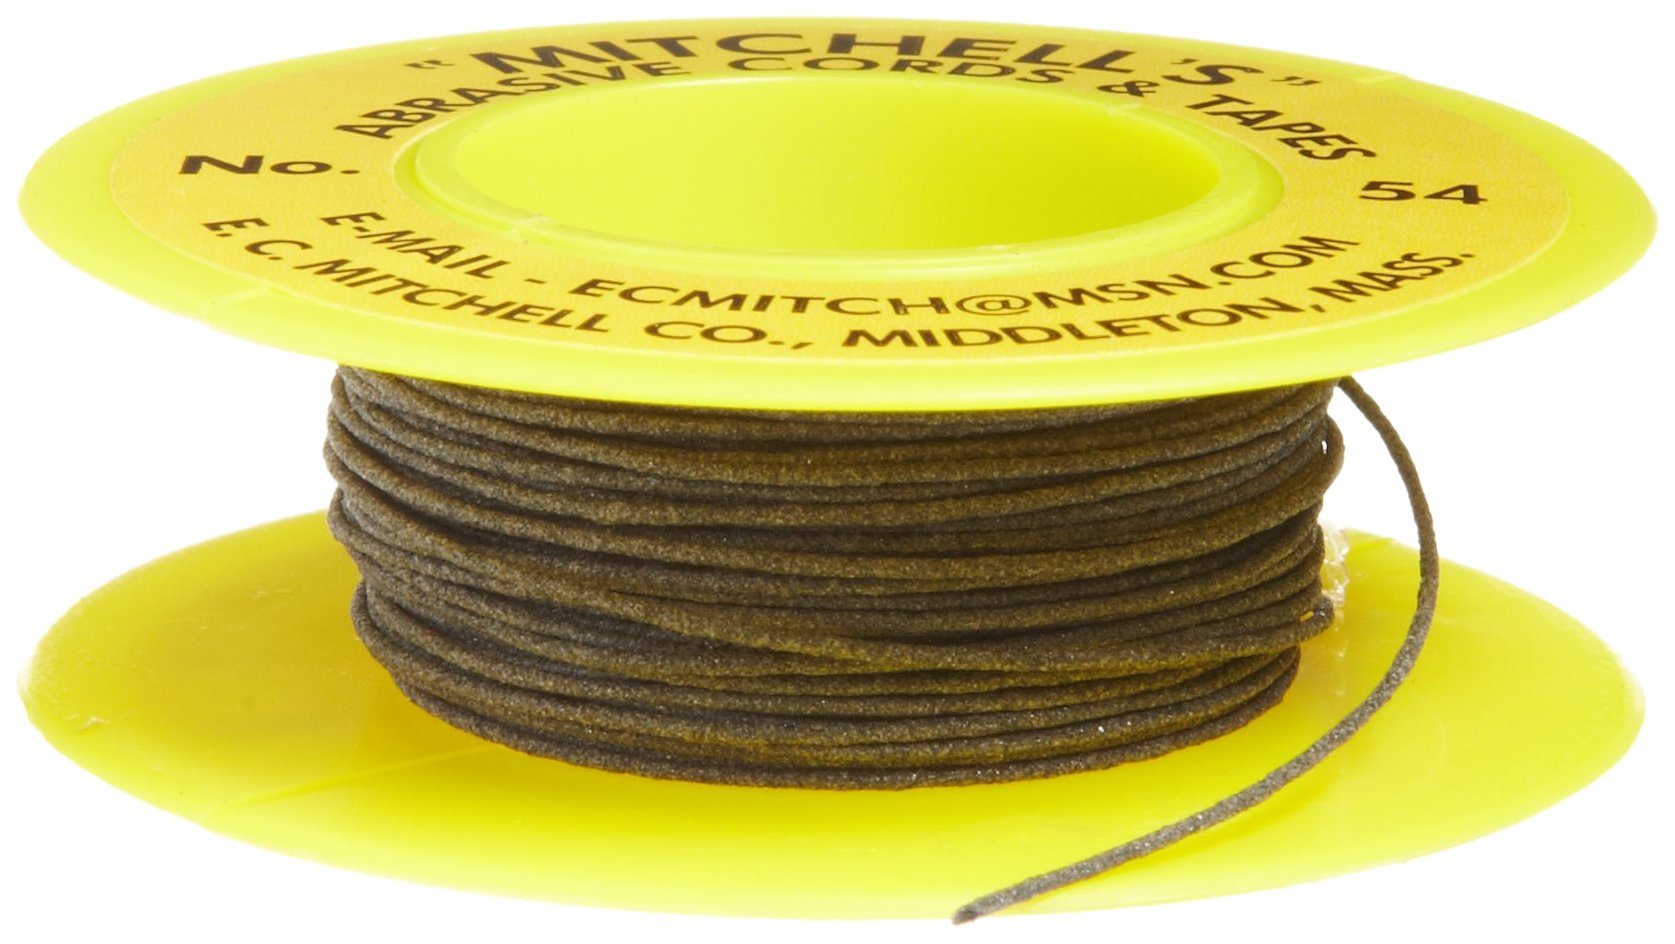 Mitchell Abrasives 54 Round Abrasive Cord, Aluminum Oxide 180 Grit .030'' Diameter x 25 Feet by Mitchell Abrasives